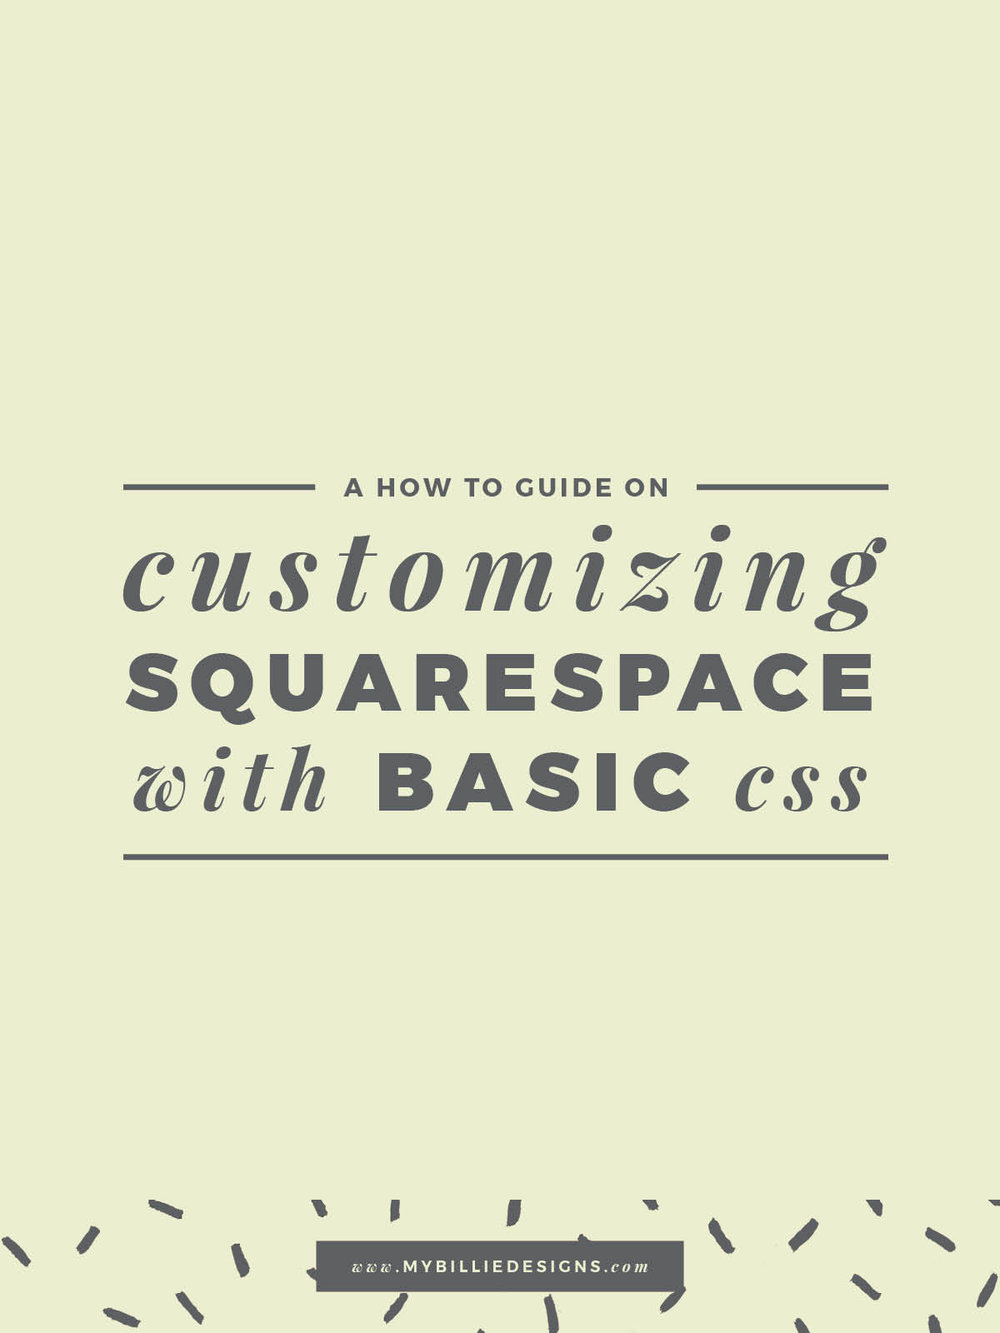 Tips and tricks to customize your Squarespace website with simple CSS. Click through to read →